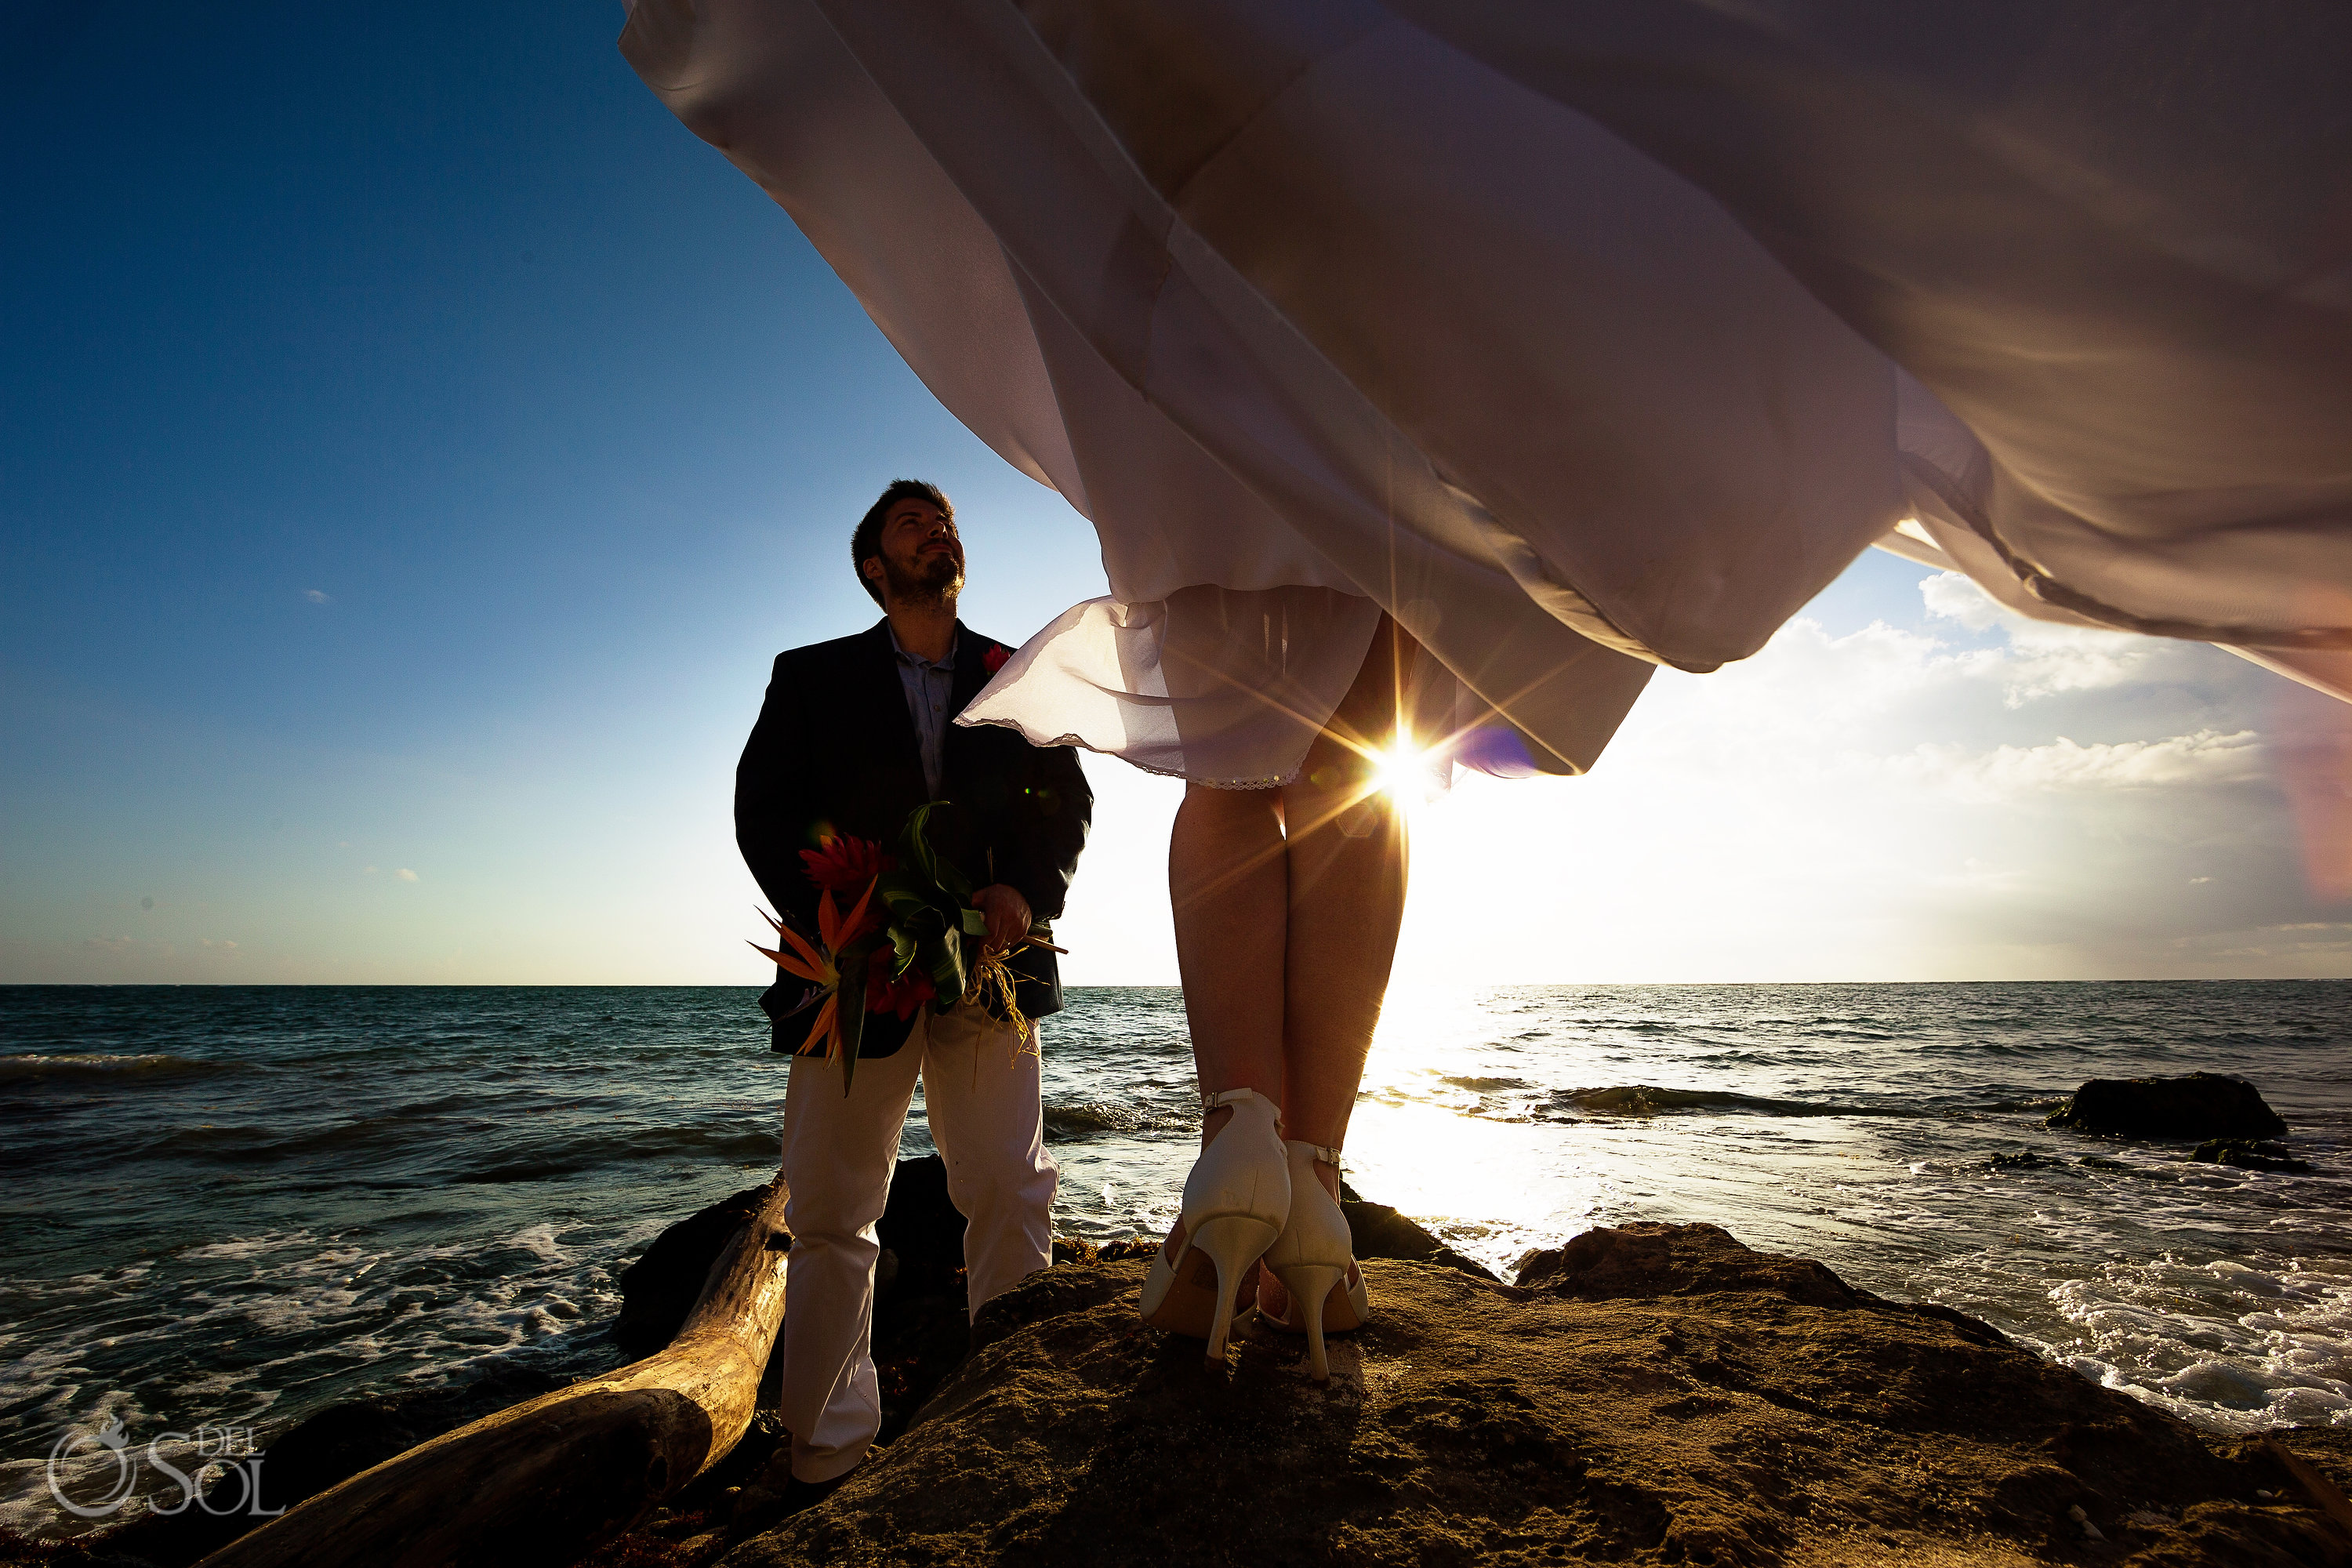 Aesthetically Pleasing Sunlight merging legs Passioned Newlyweds Vintage Bridal Shoes Akumal Bay Elopement